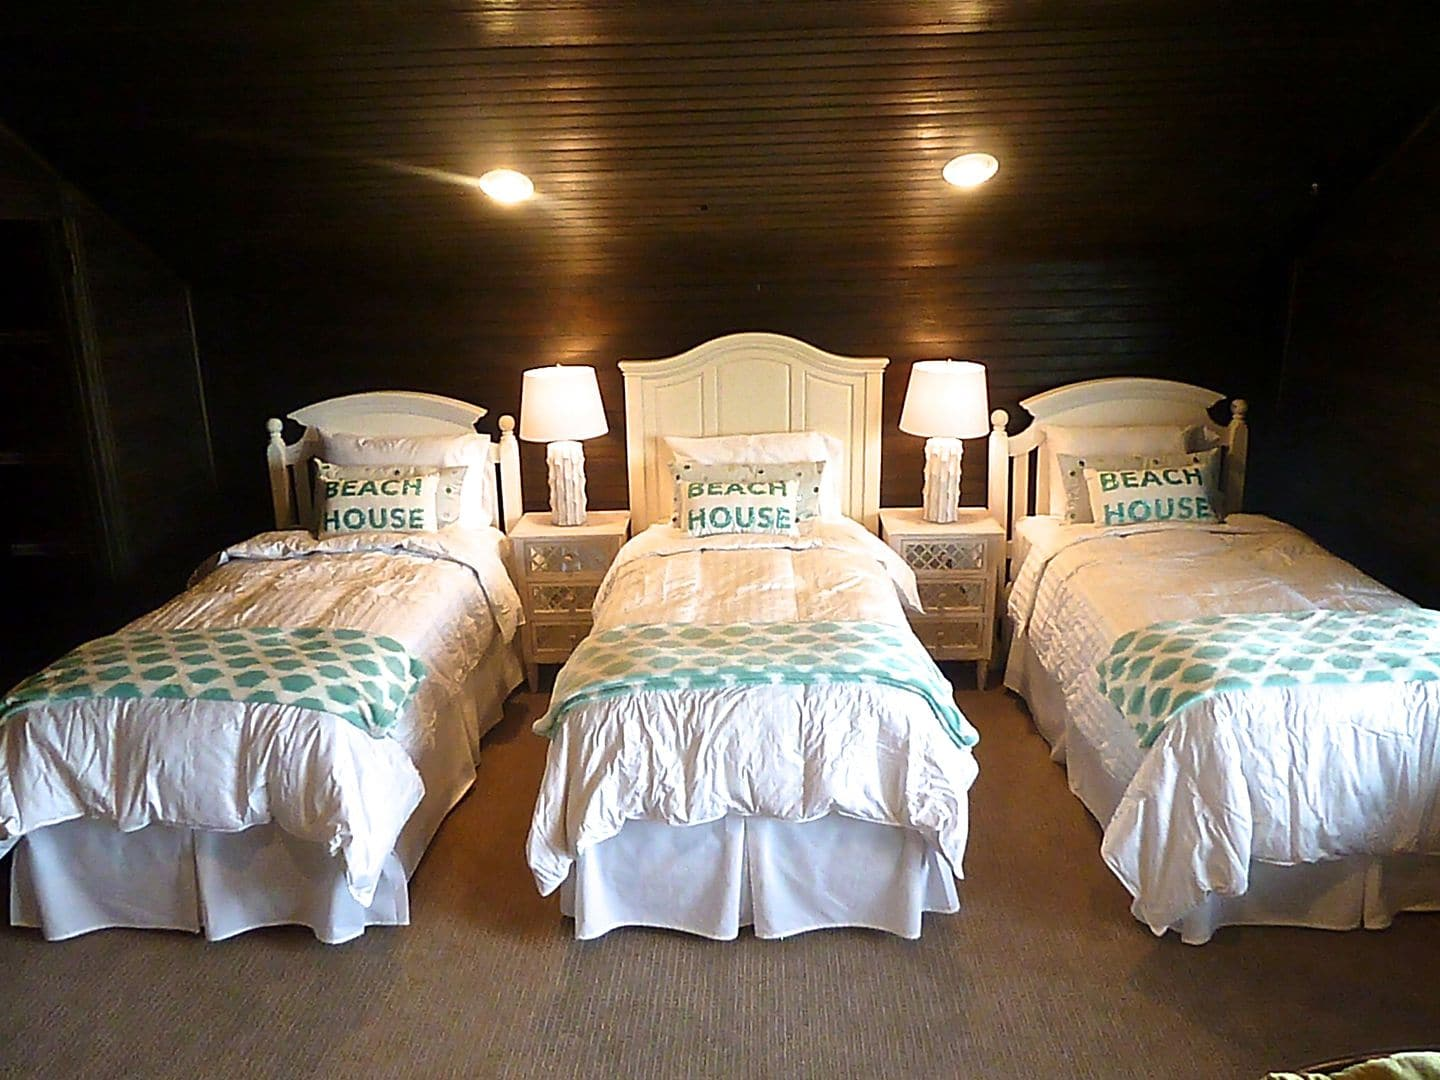 crisp down bedding with seaglass accents